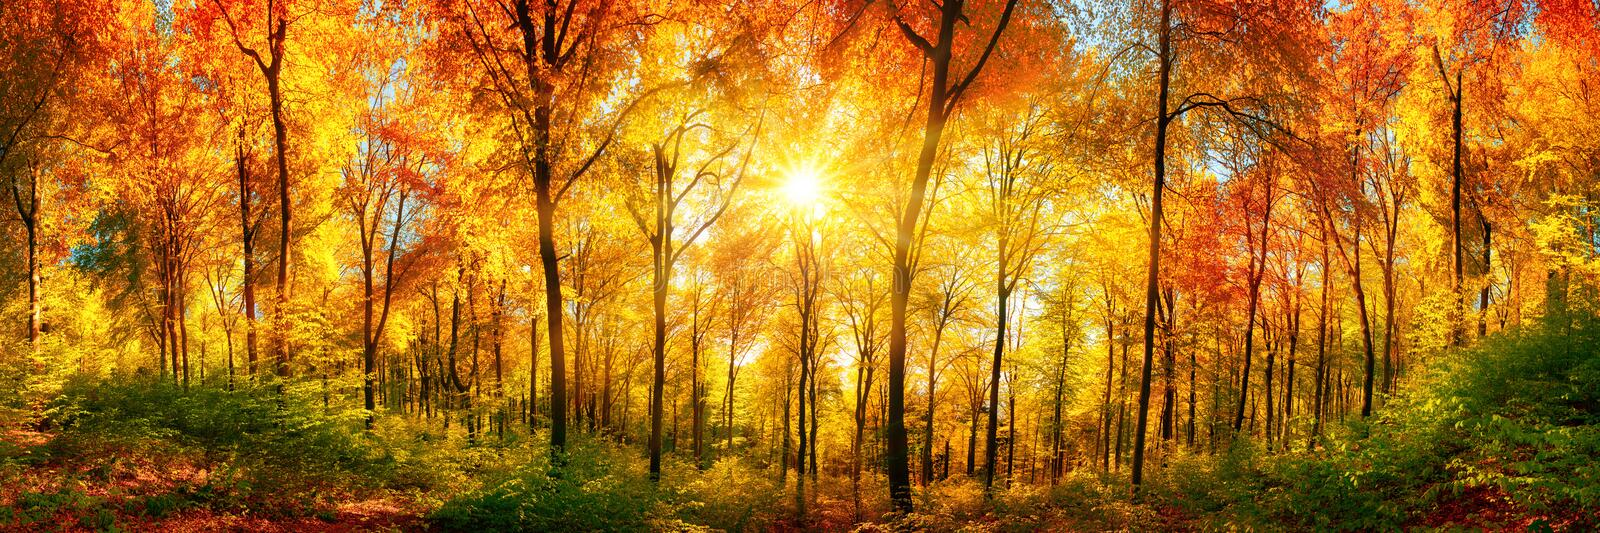 Forest panorama in autumn. Autumn scenery in panorama format: a forest in vibrant warm colors with the sun shining through the leaves royalty free stock photos